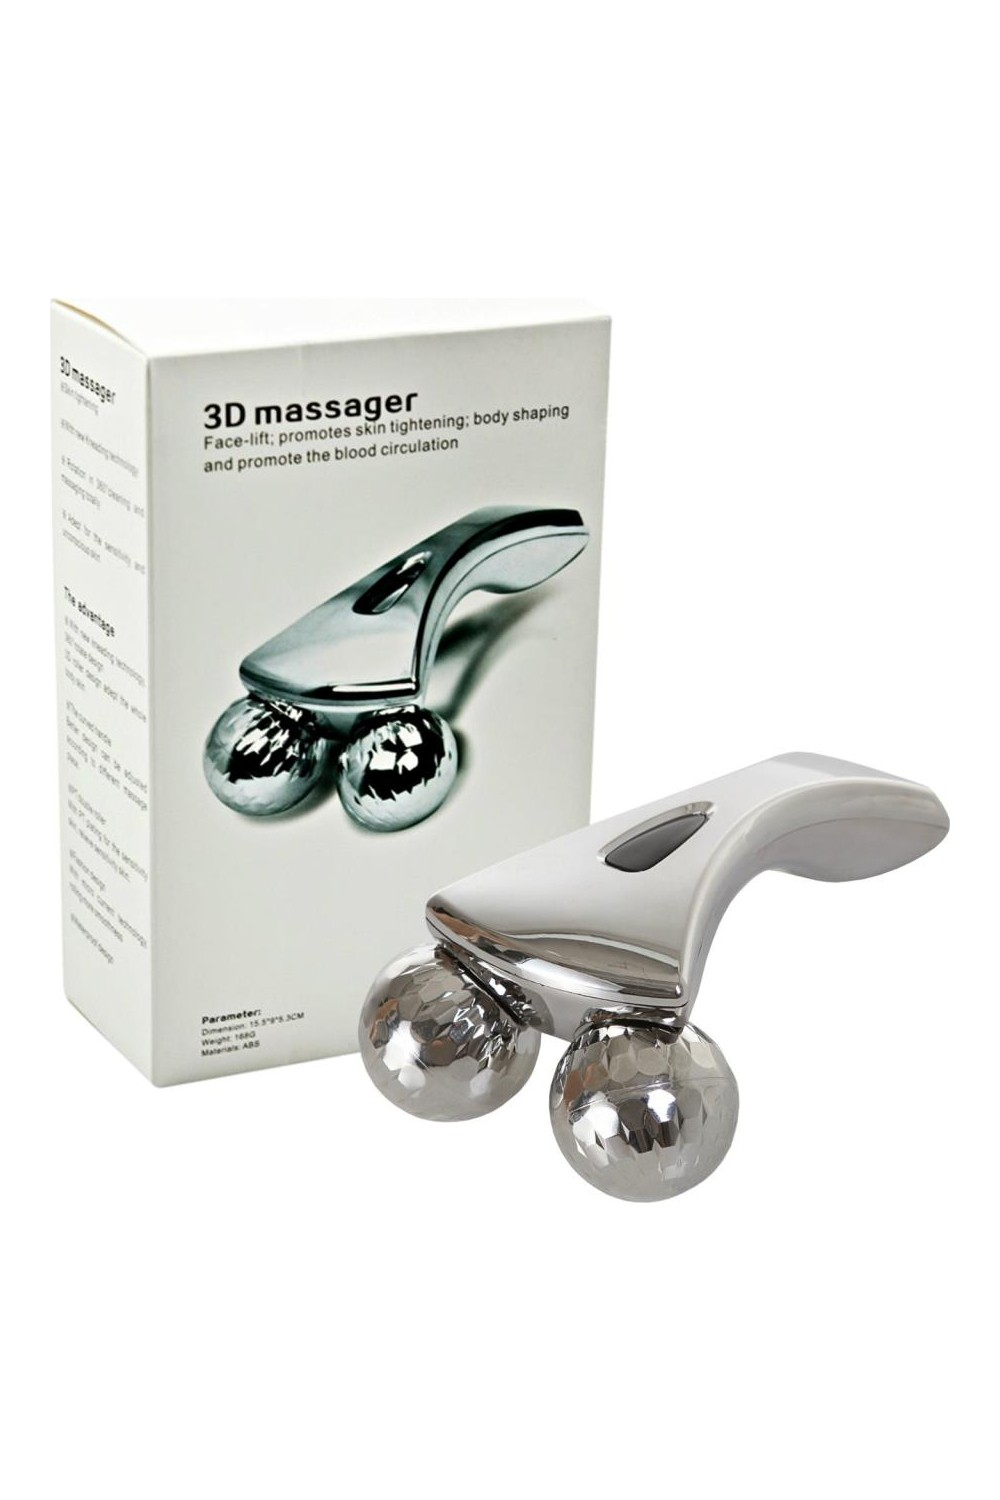 Skin Firming Massage Therapy Practice Tool - 3D Massager